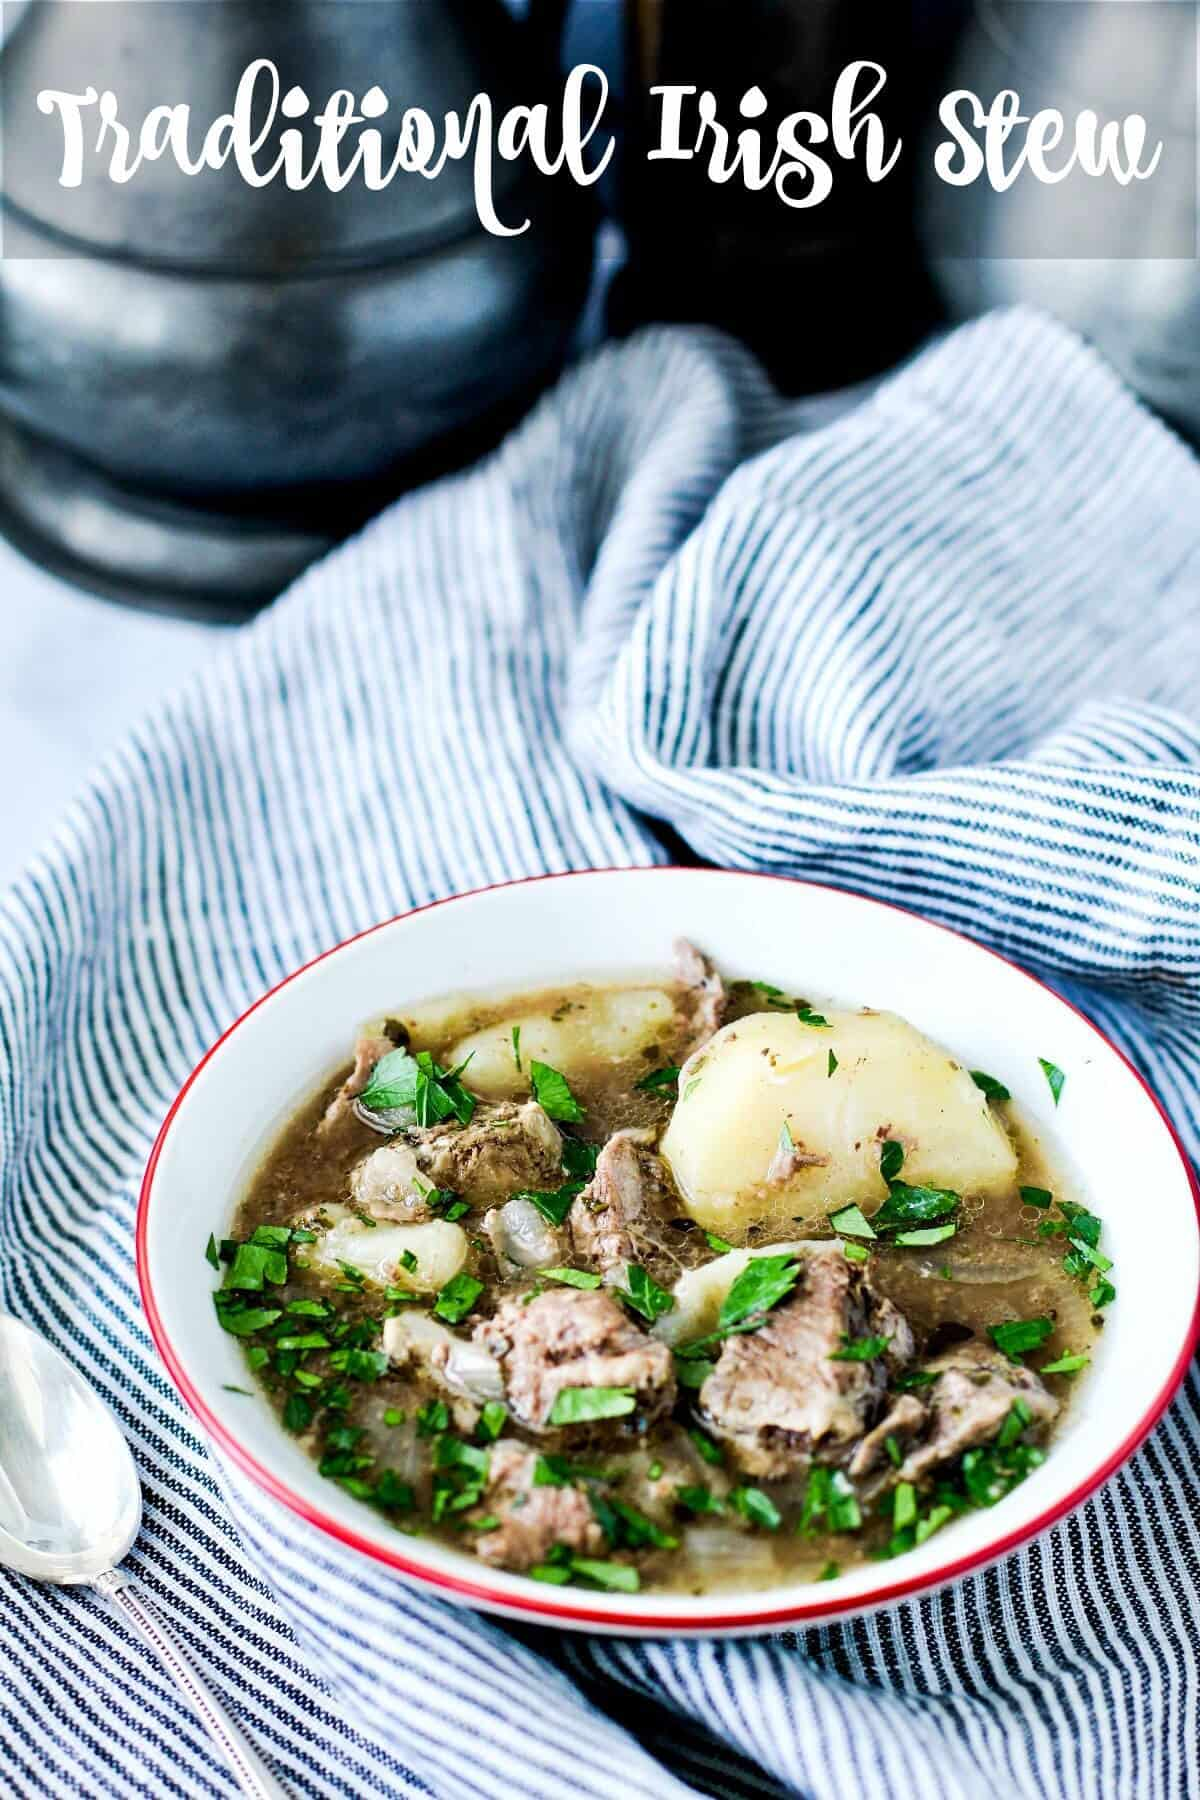 Traditional Irish Stew with lamb, potatoes, and onions